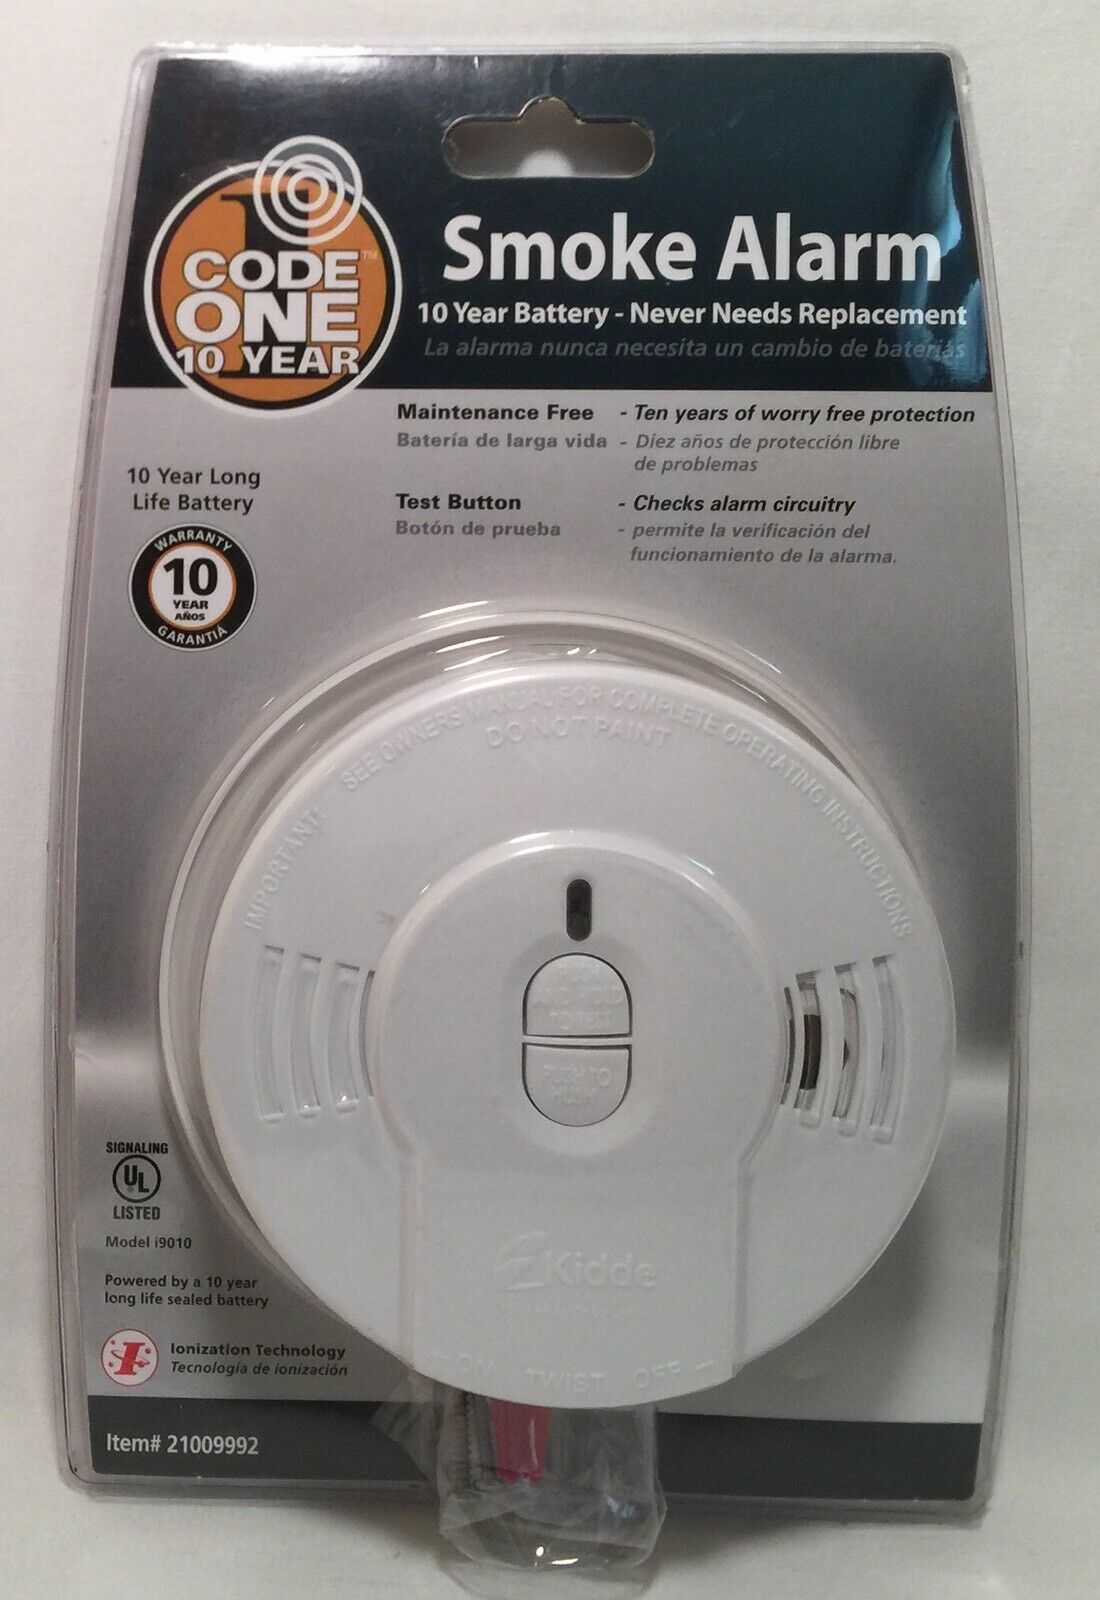 Smoke Alarm Smoke Alarm Ideas Smokealarm Firealarm Code One Smoke Alarm Detector Model I9010 10 Year Battery Code One Smo Smoke Alarms Fire Alarm Alarm